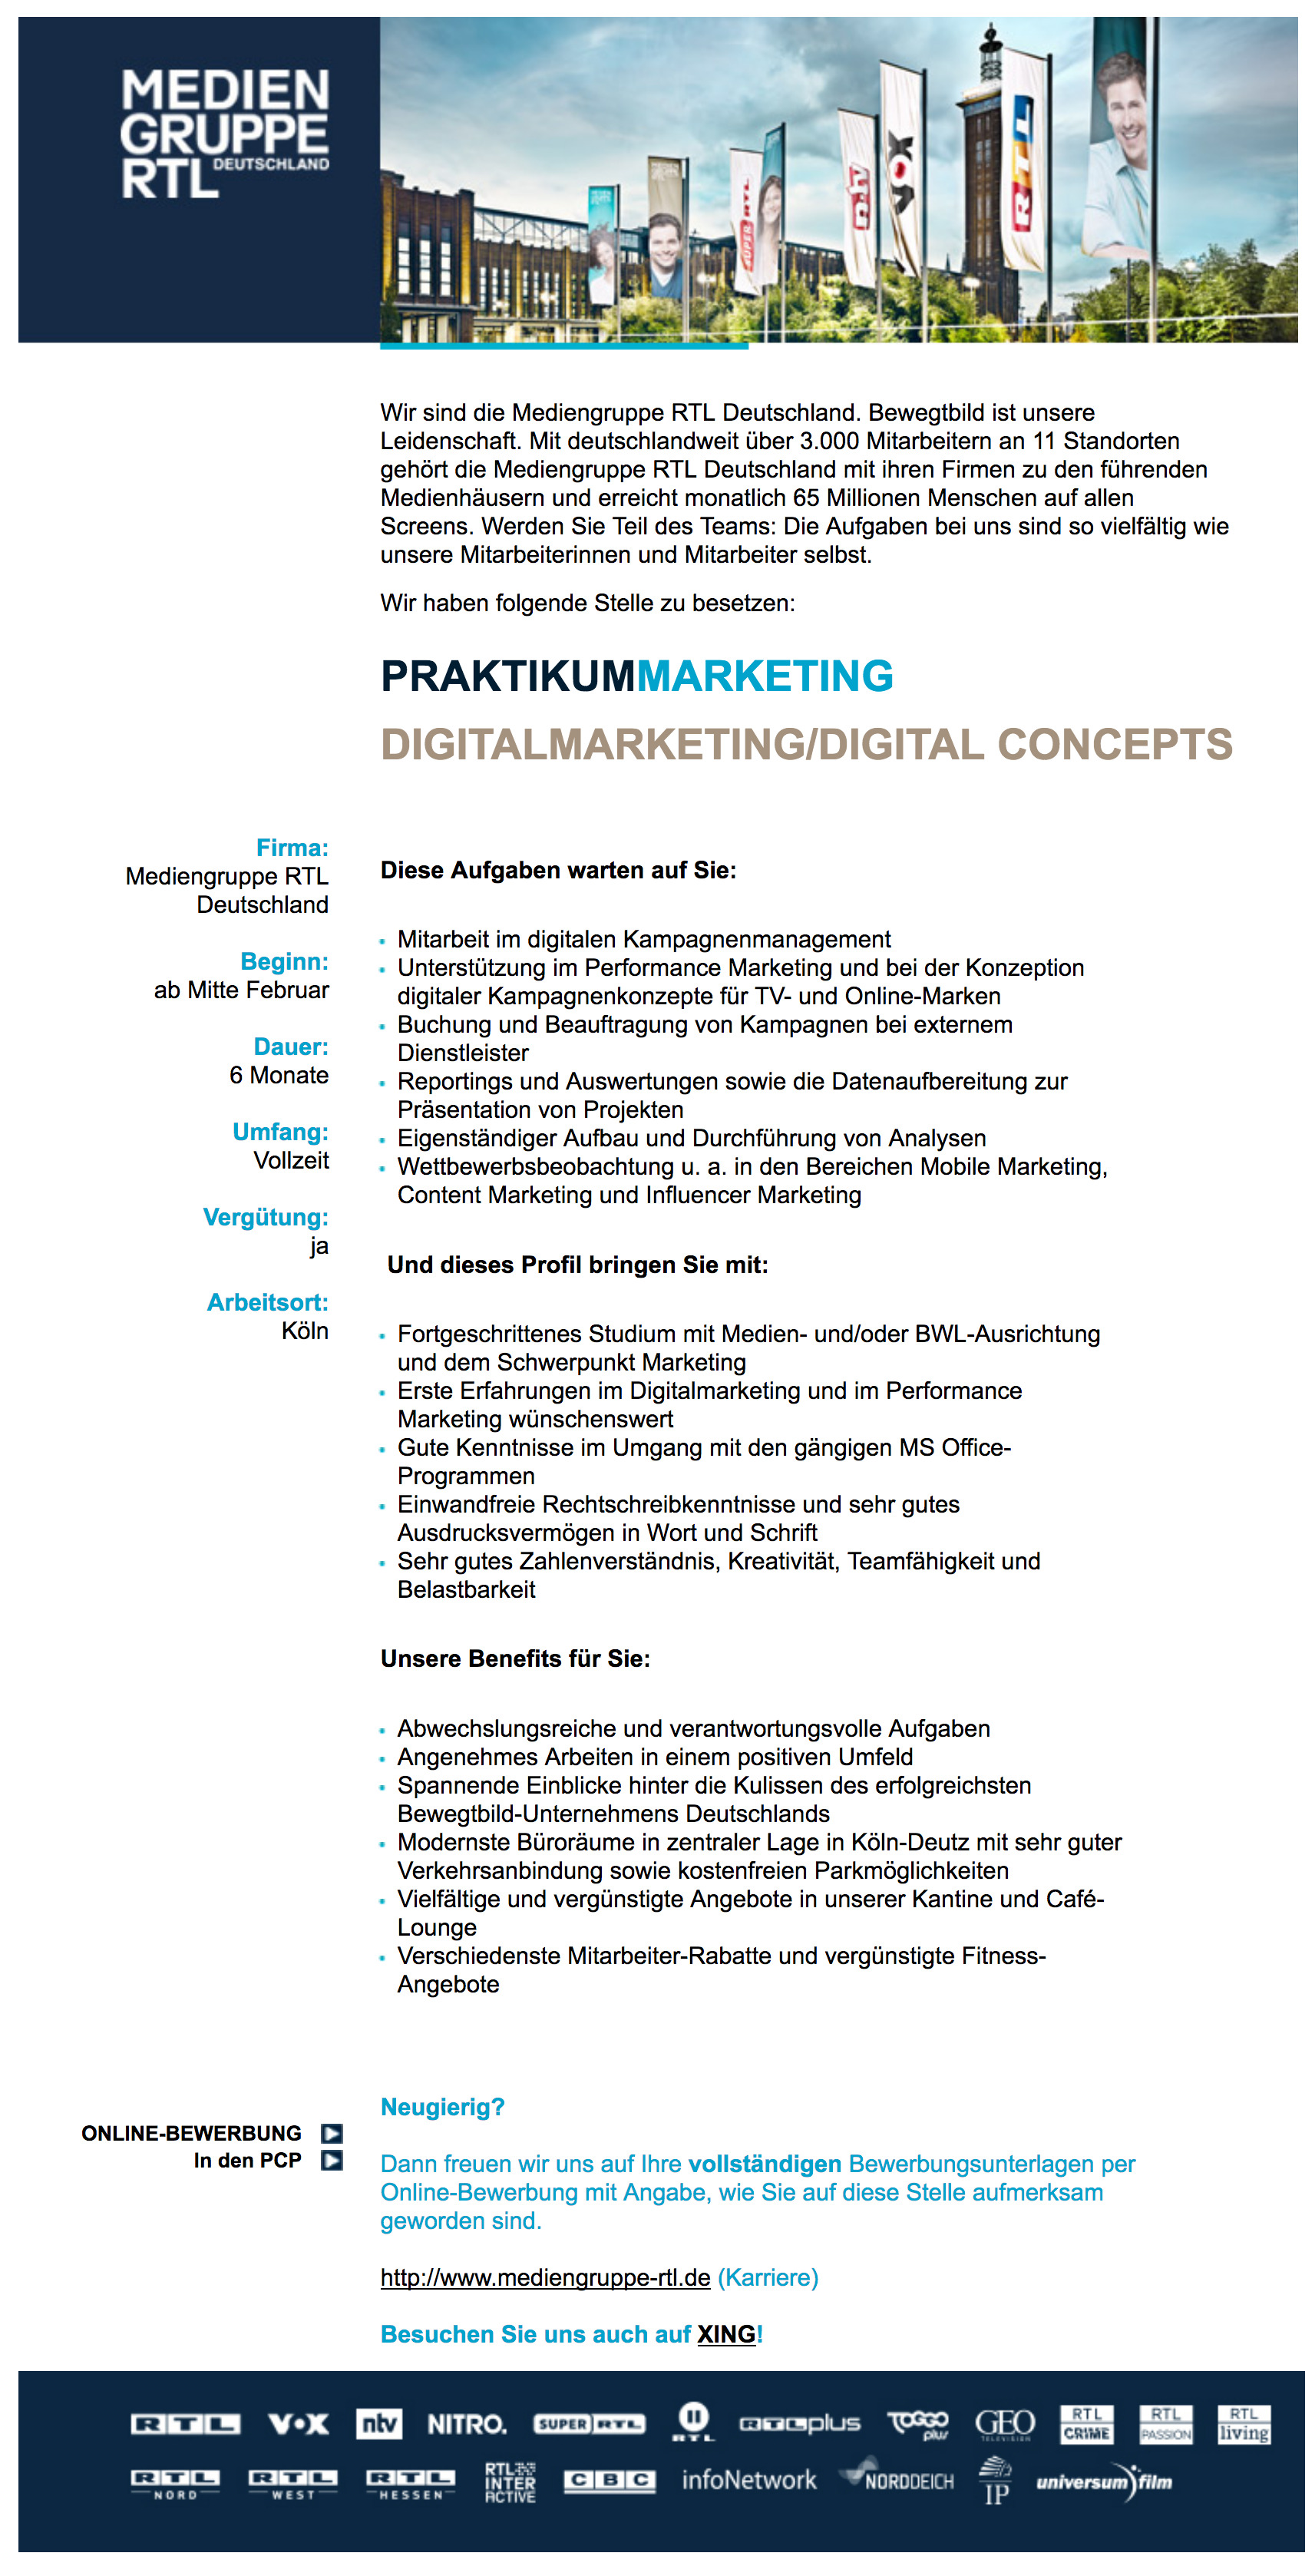 Praktikum Marketing Digitalmarketing / Digital Concepts